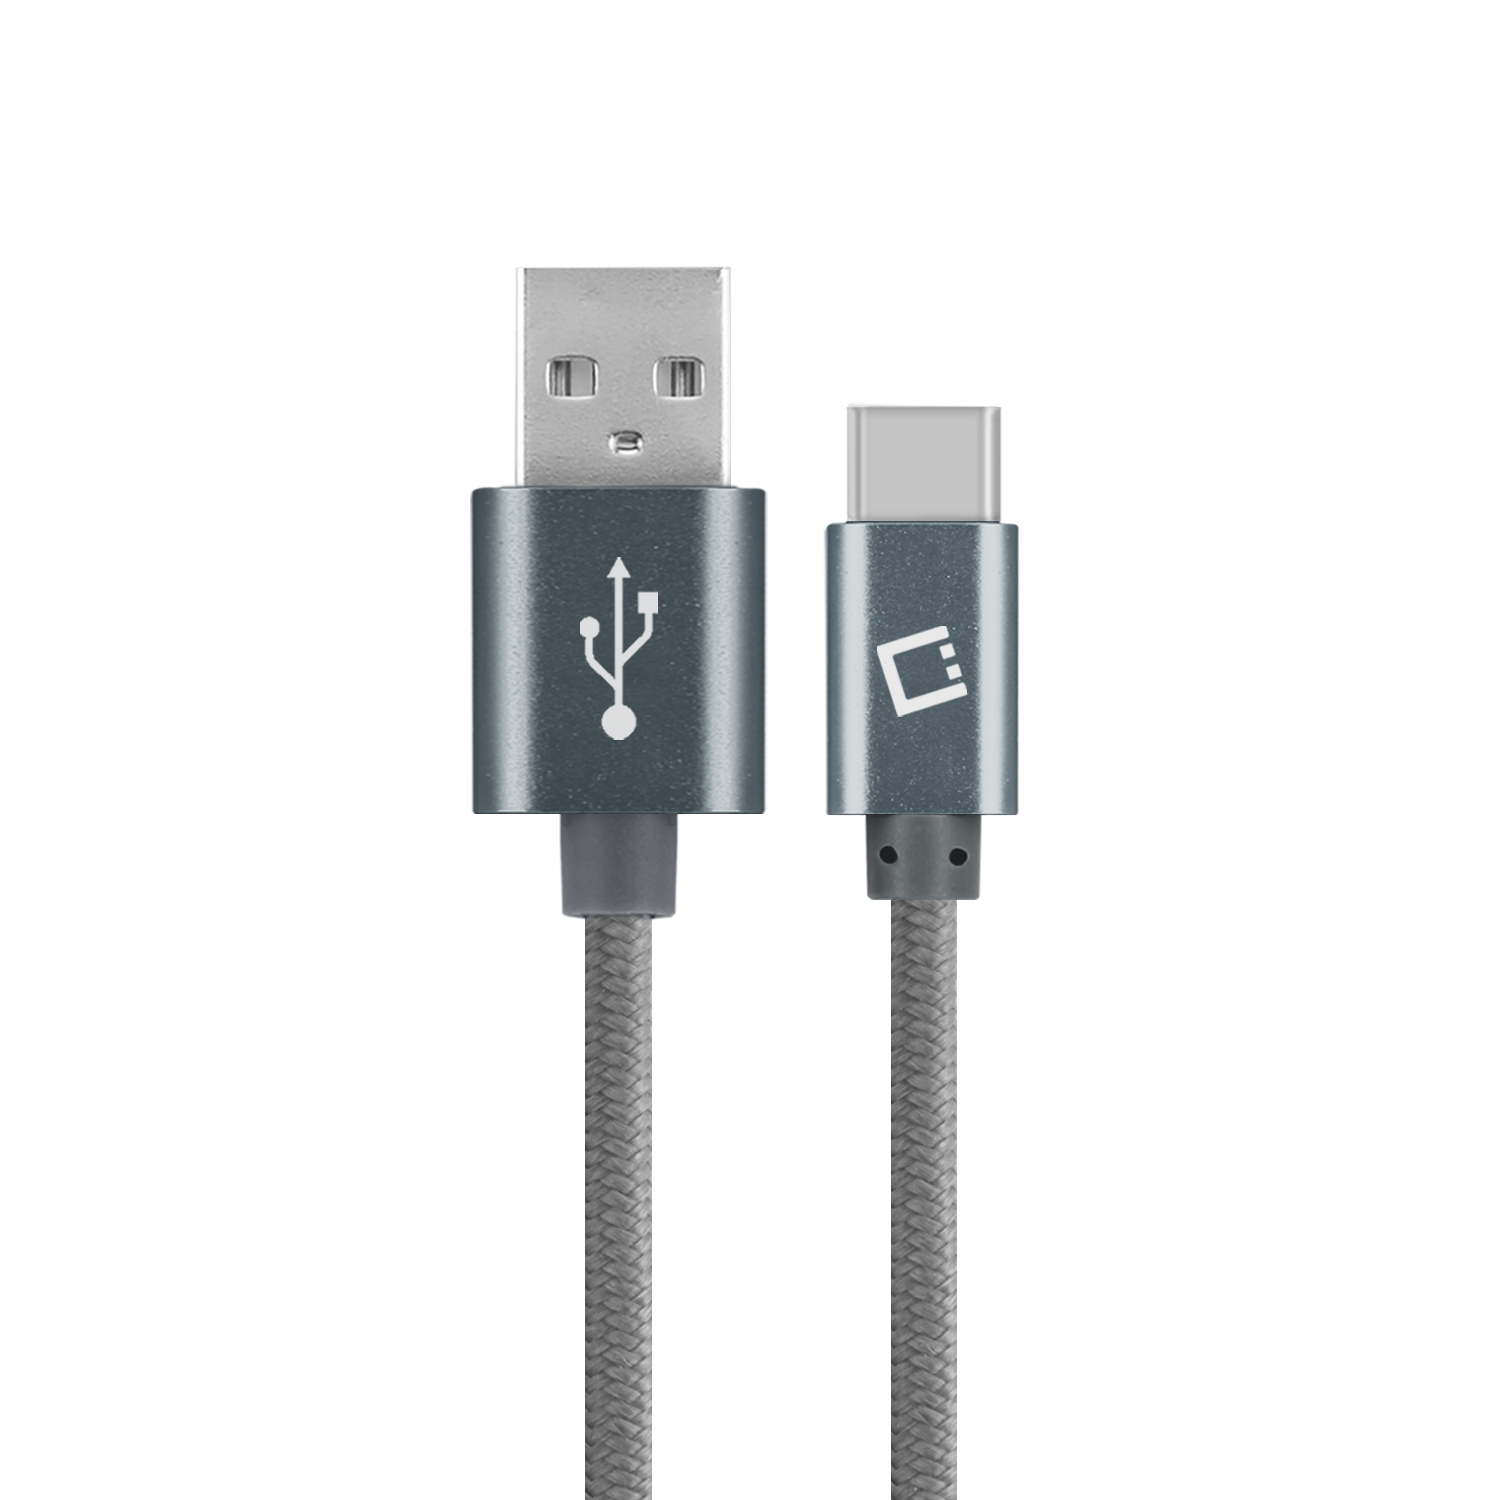 Sony Xperia XA1 USB Type-C To Type-A Braided Data Power Cable Grey 4ft Braided